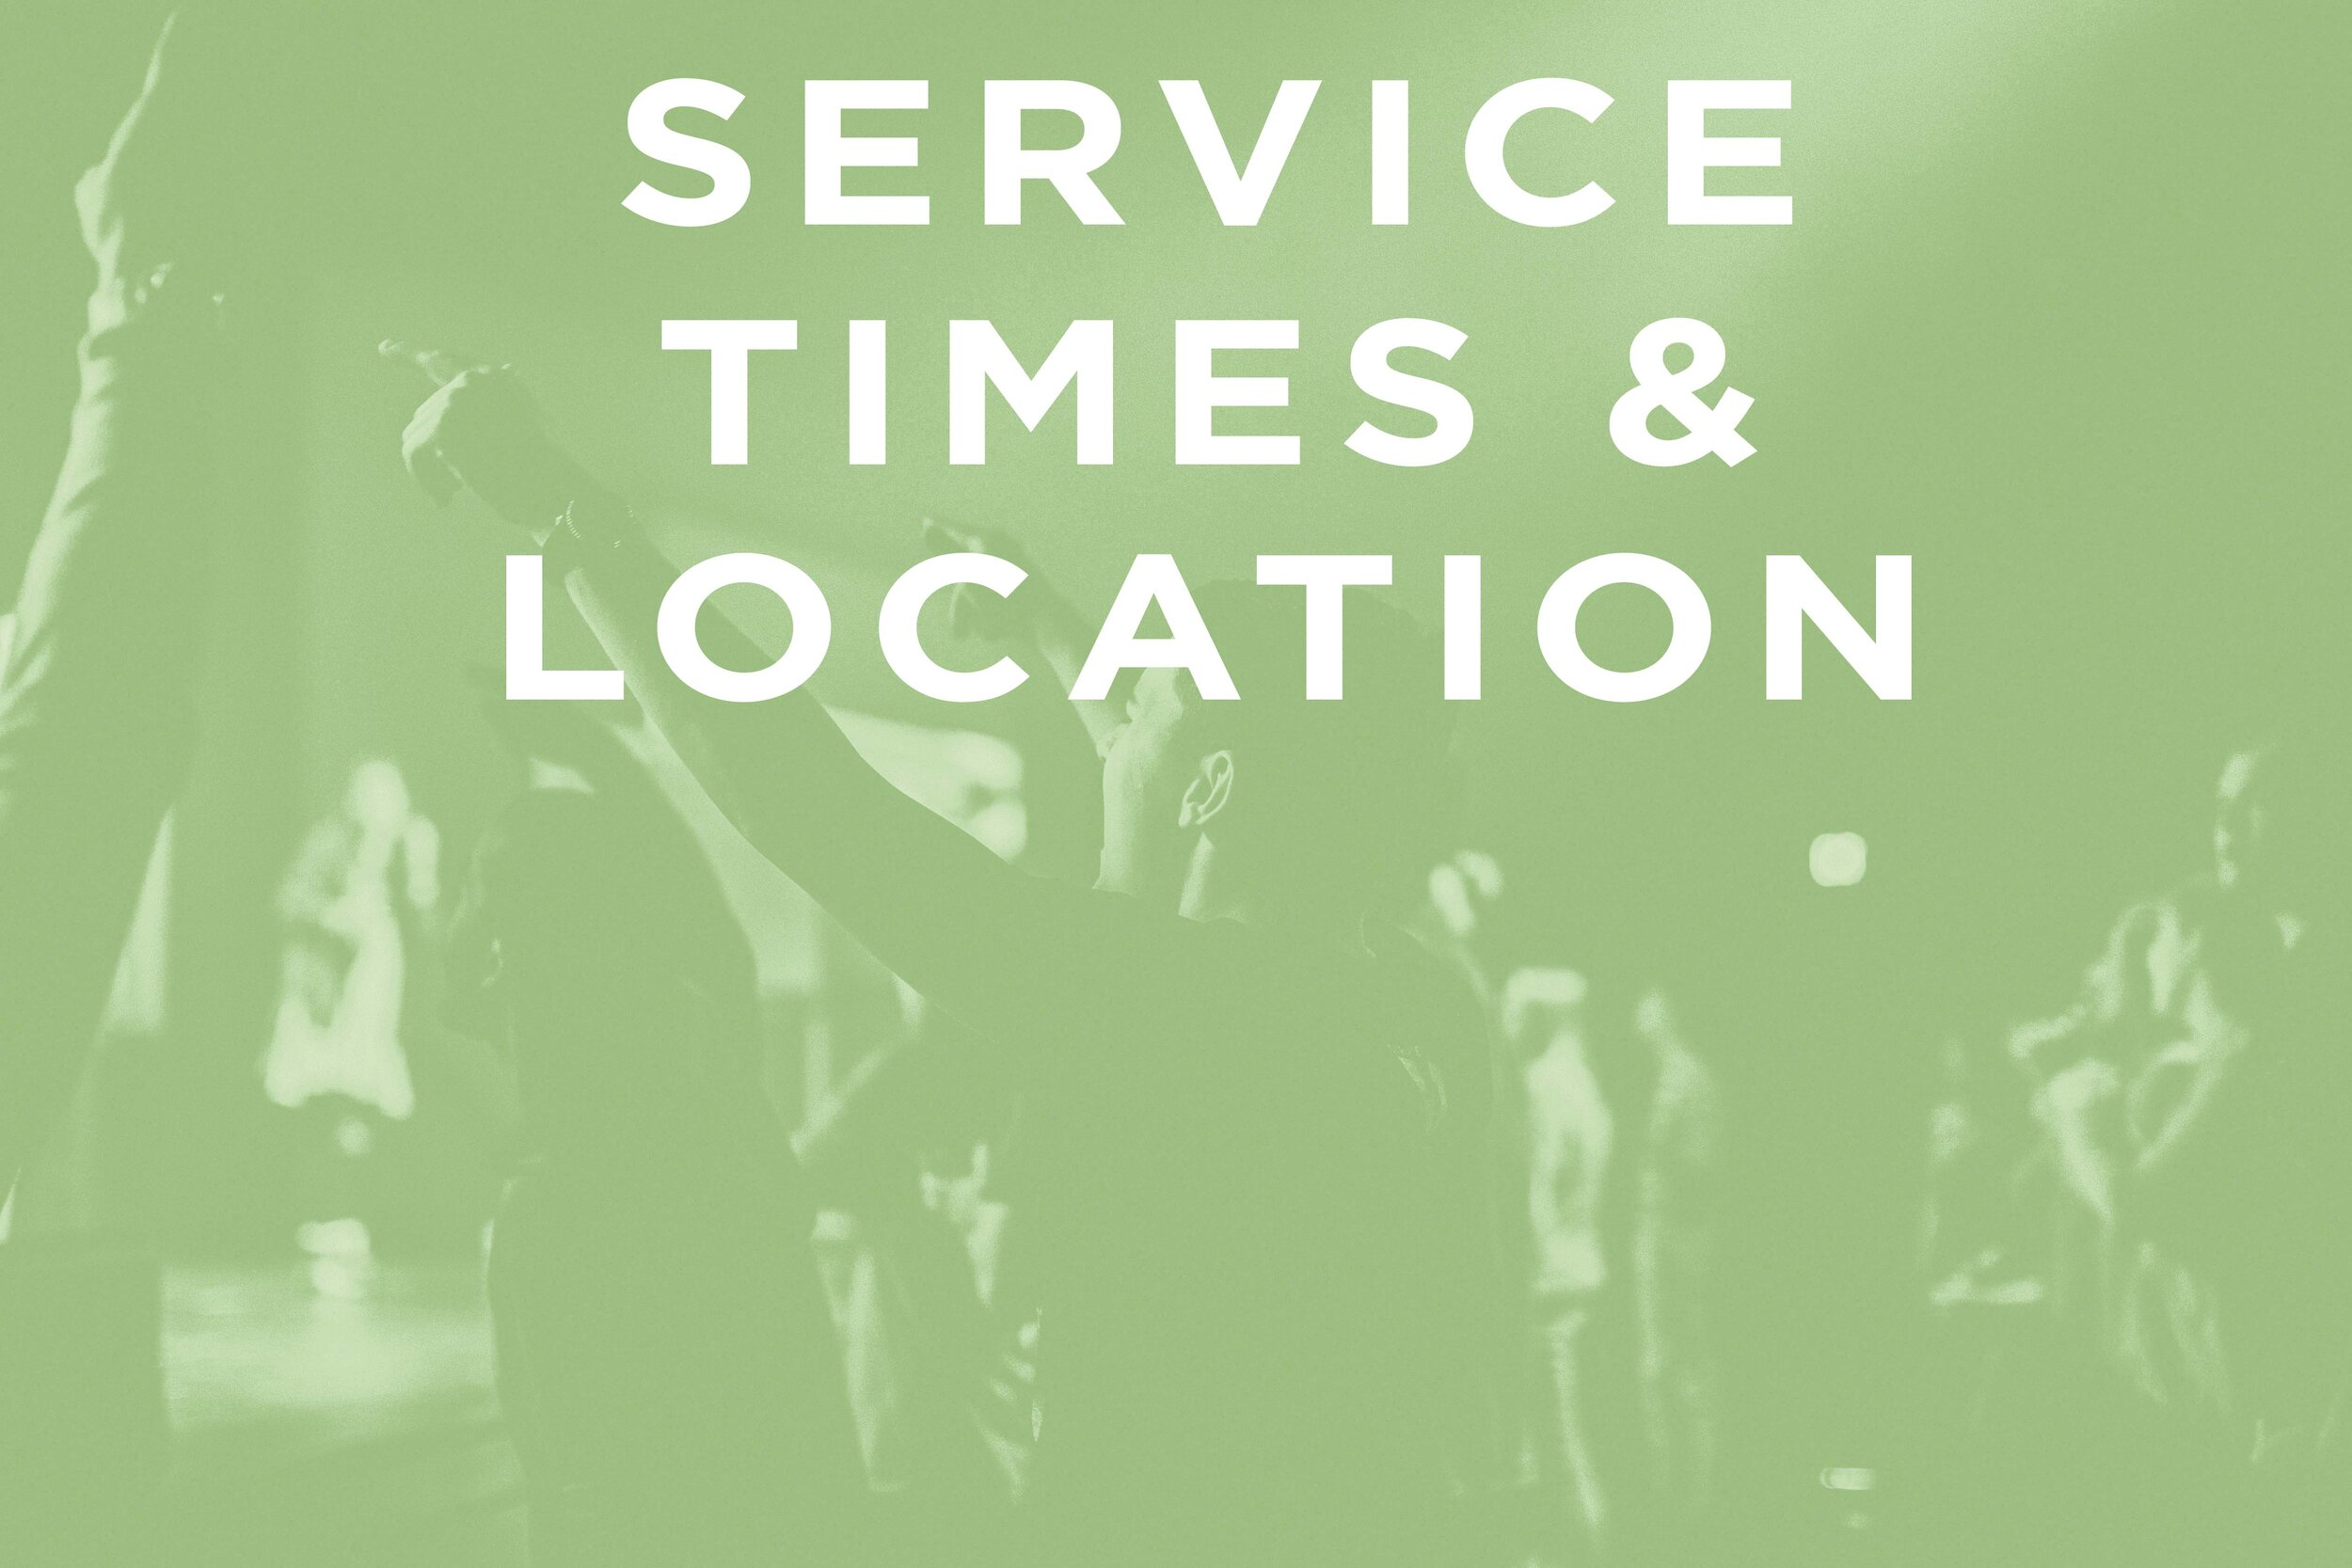 service times and location.jpg